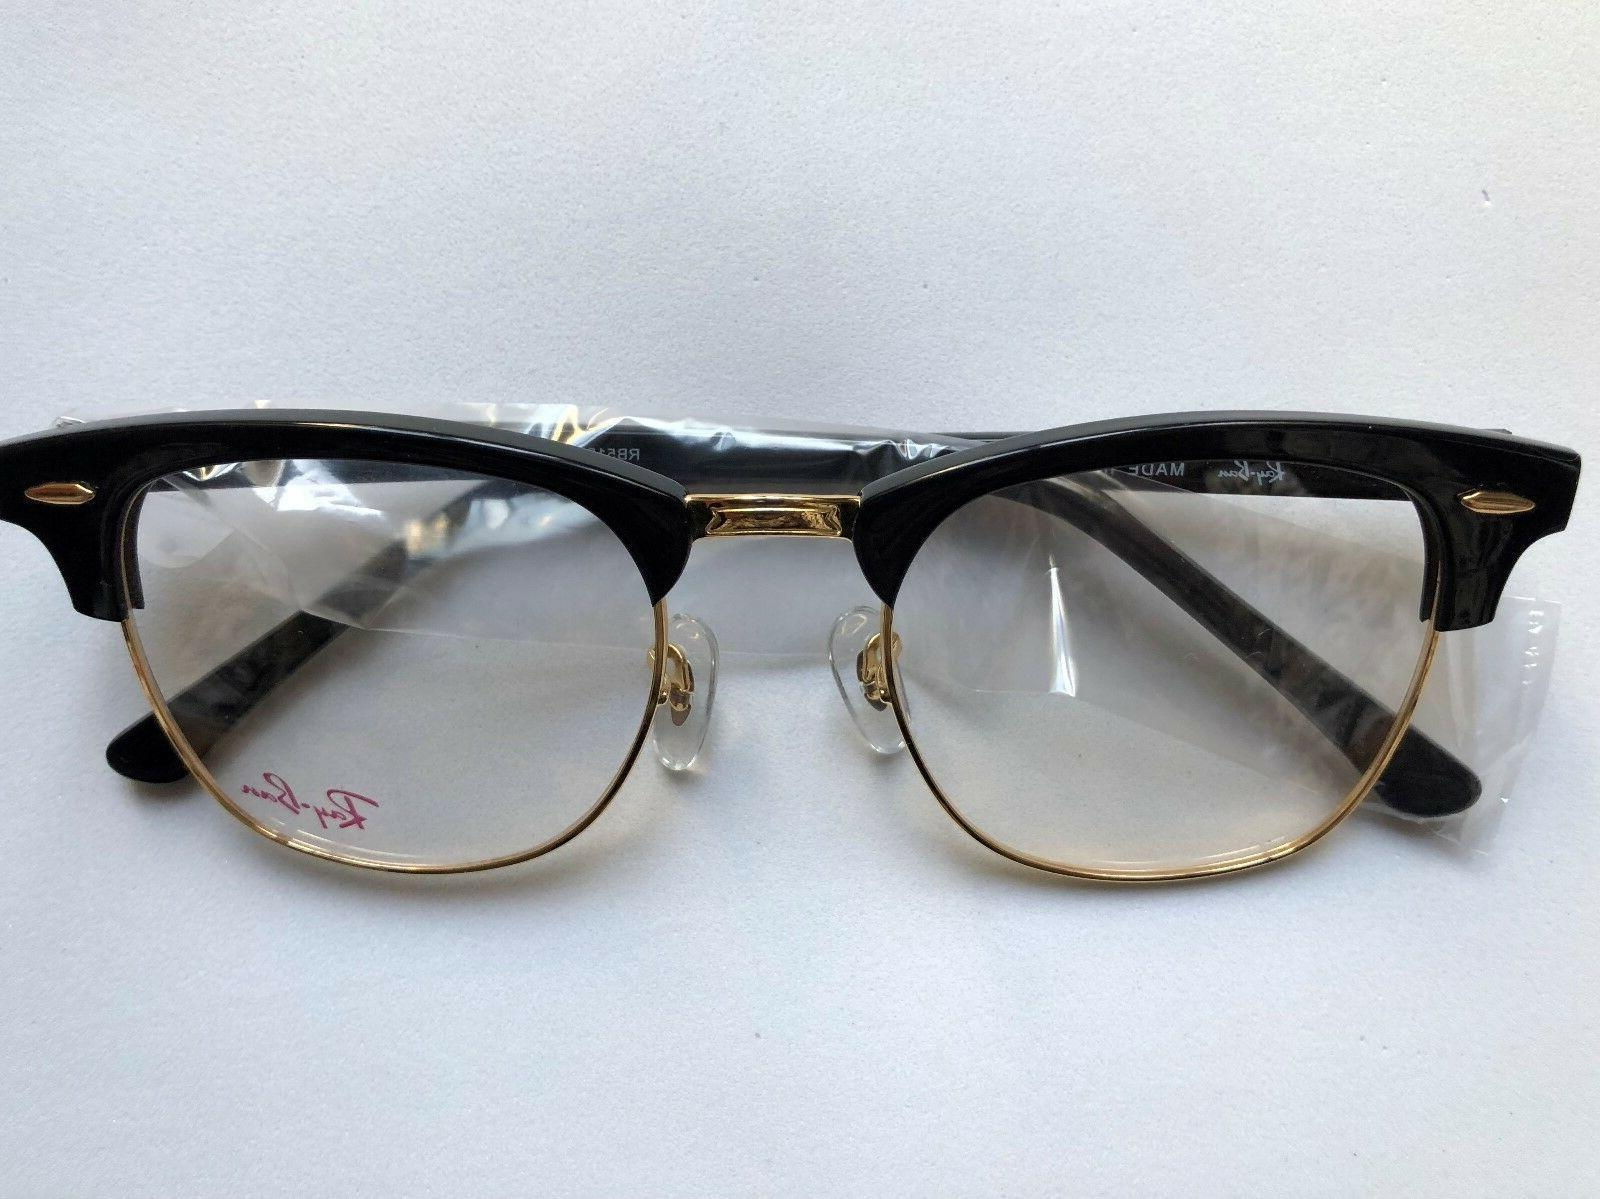 BRAND NEW! RAY-BAN RB 5154 2000 GOLD